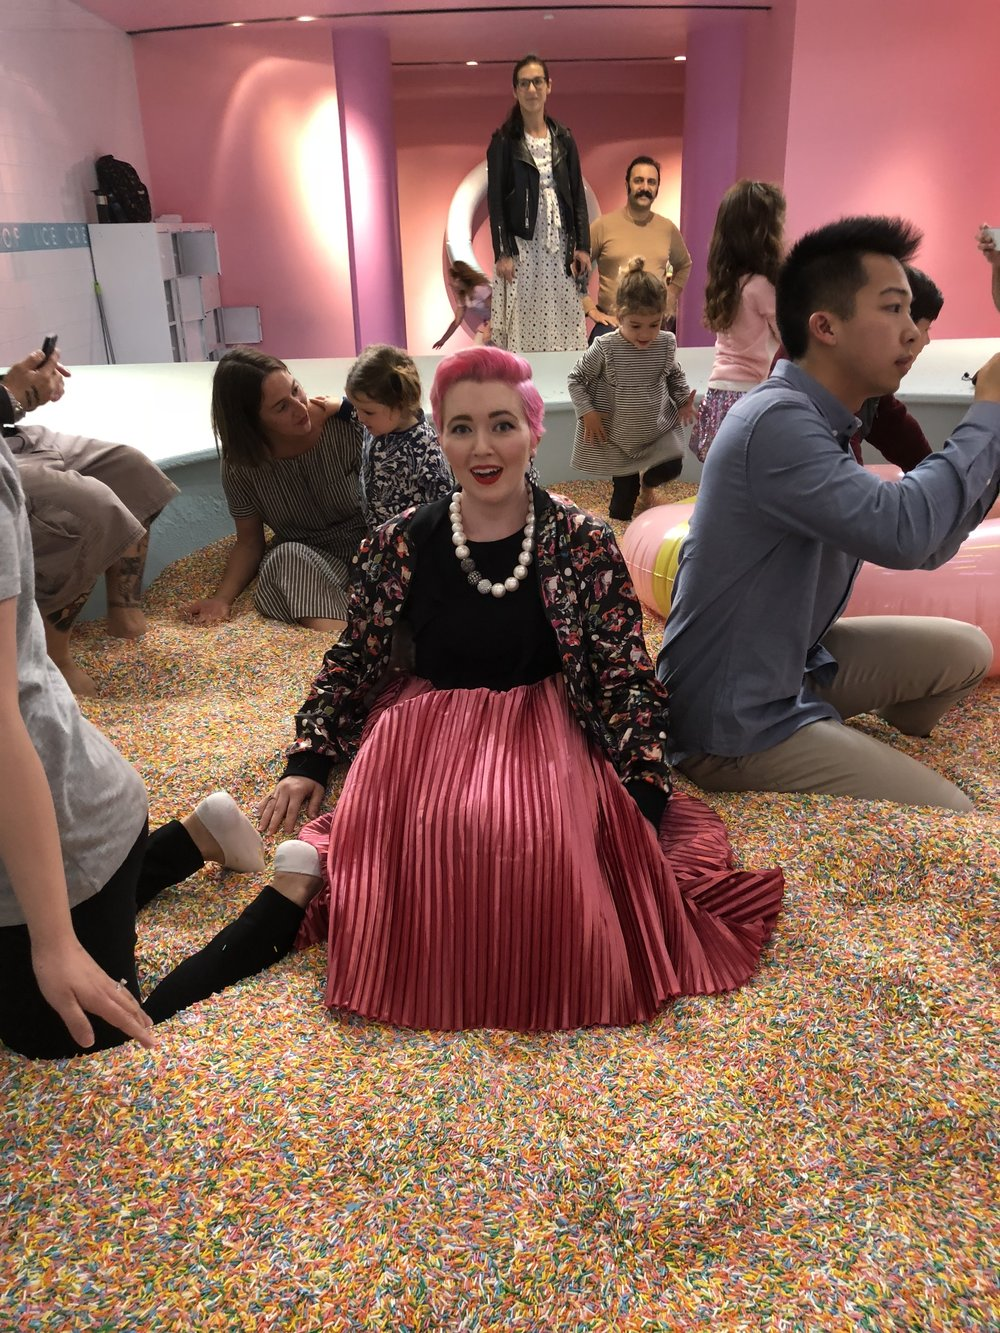 Freaking out about getting stuck in the sprinkles.